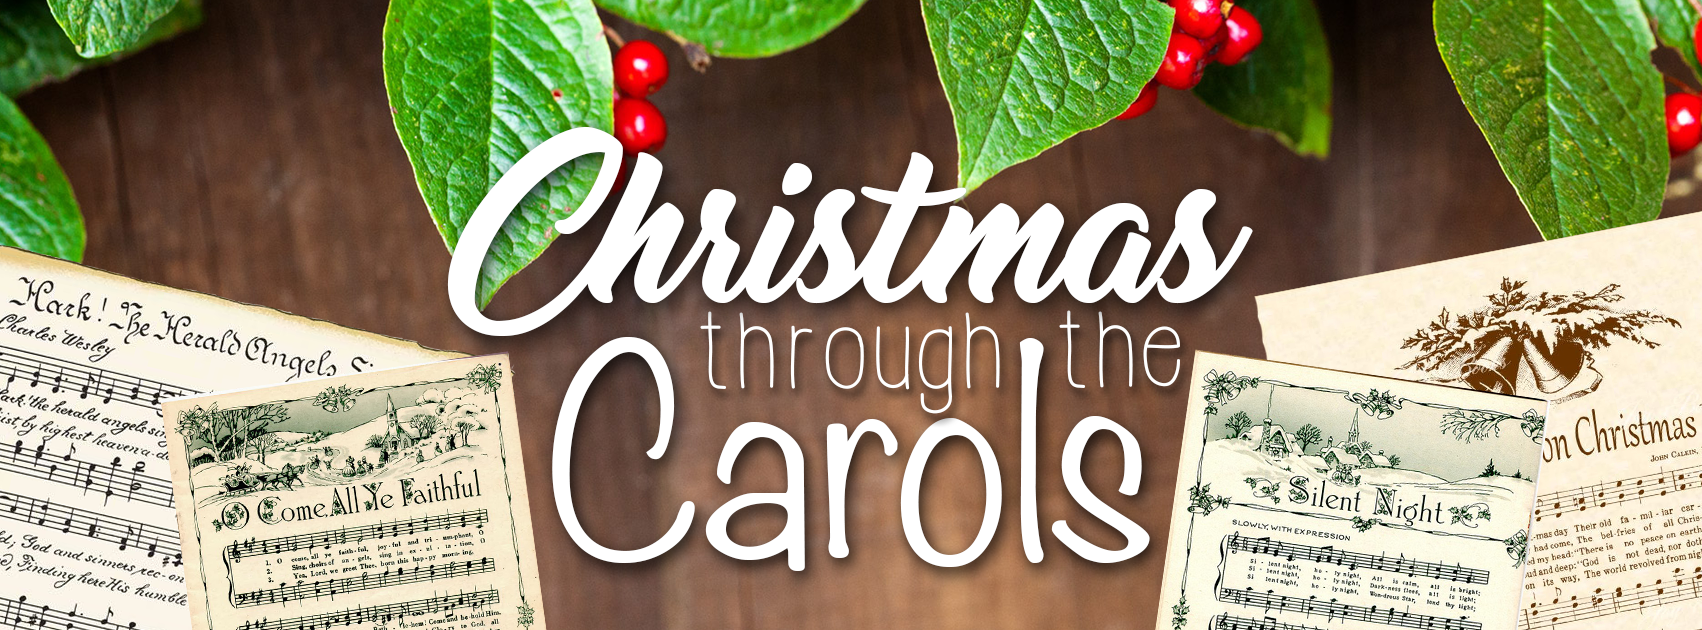 Christmas Through The Carols, Part 2: Hark! The Herald Angels Sing